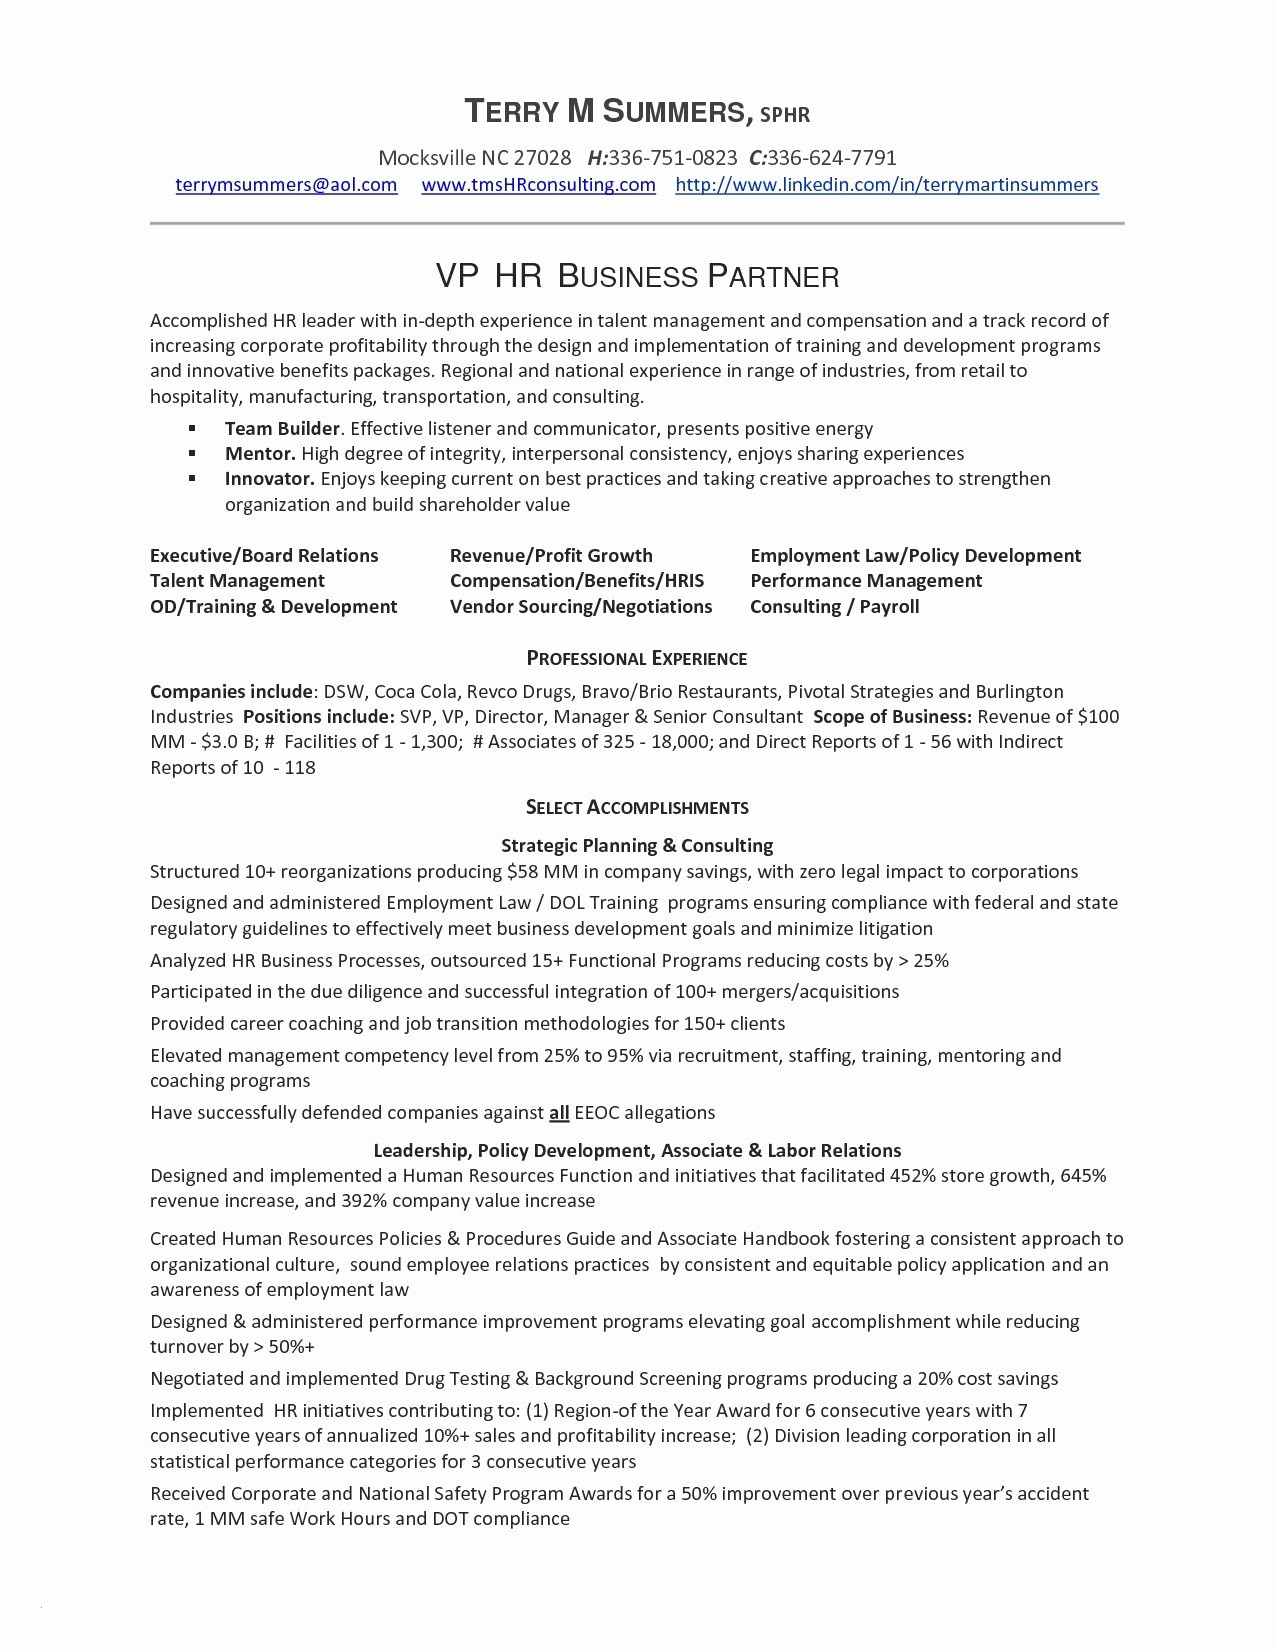 resume template github example-Resume Template Business Analyst New Simple Resume format Doc New Resume Template Doc Lovely Business 9-h